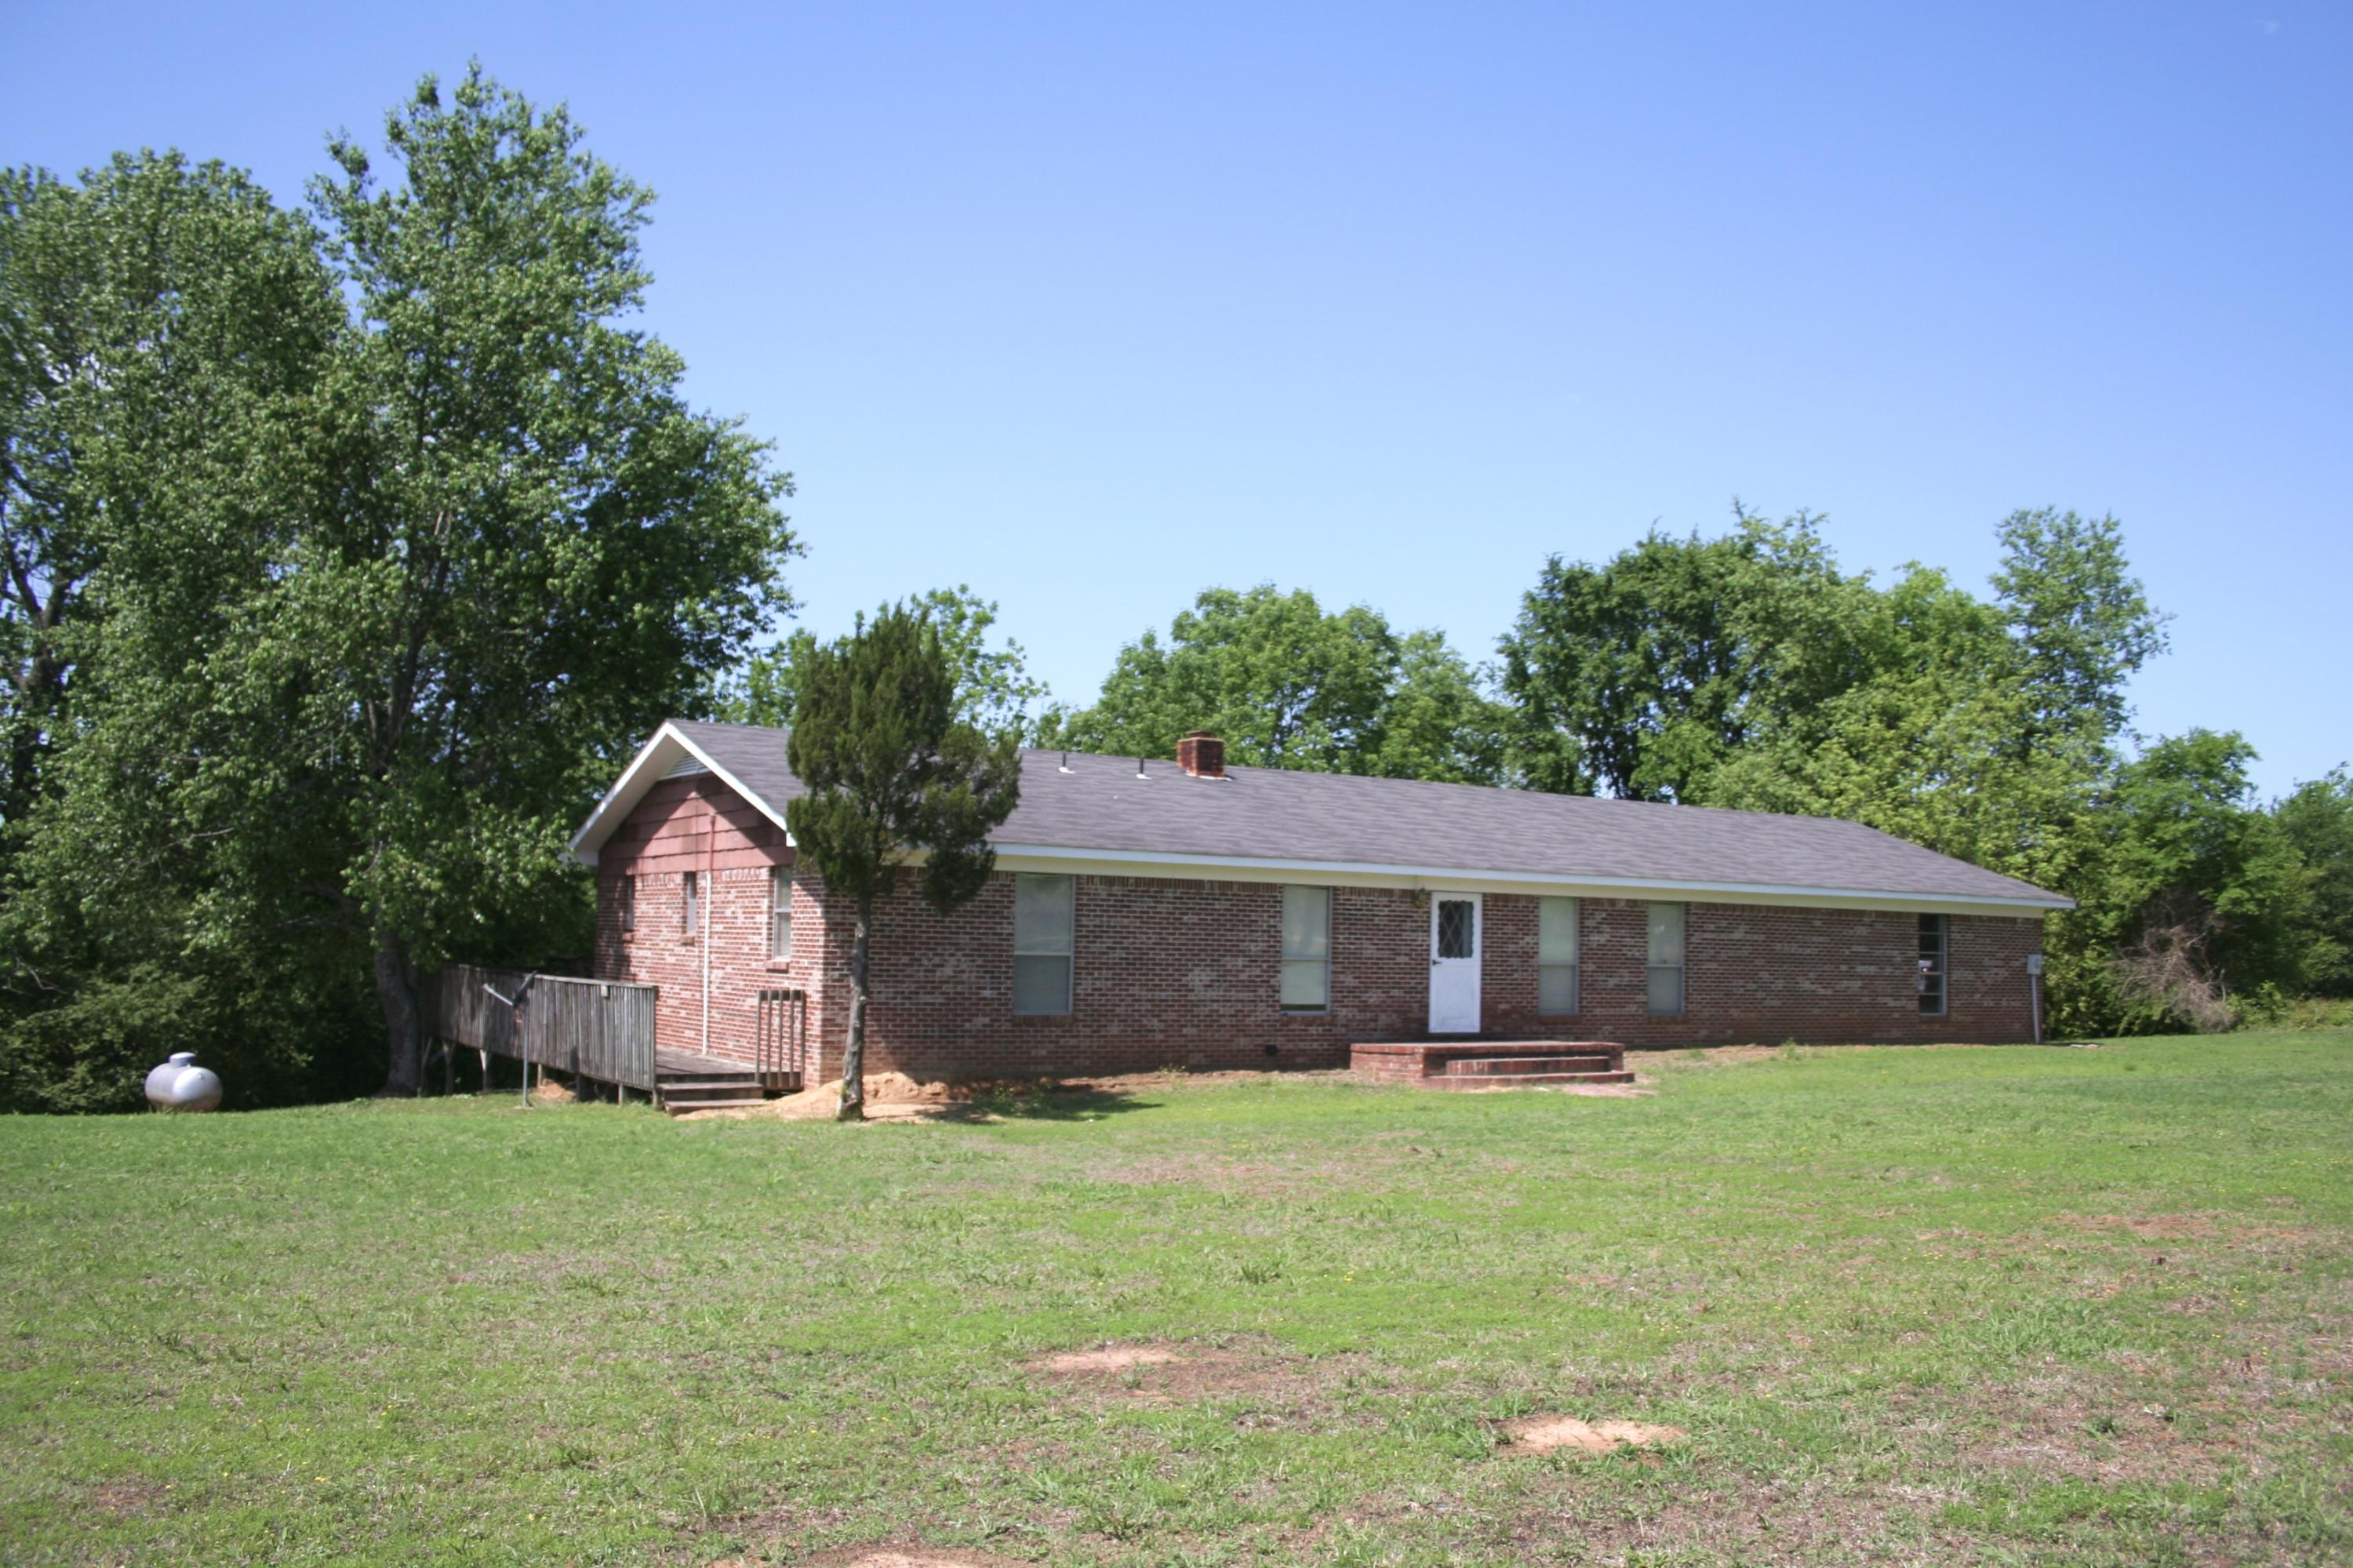 Main photo 58 of sold home in Belleville at 13373  Spring Creek Road, Belleville, AR 72824